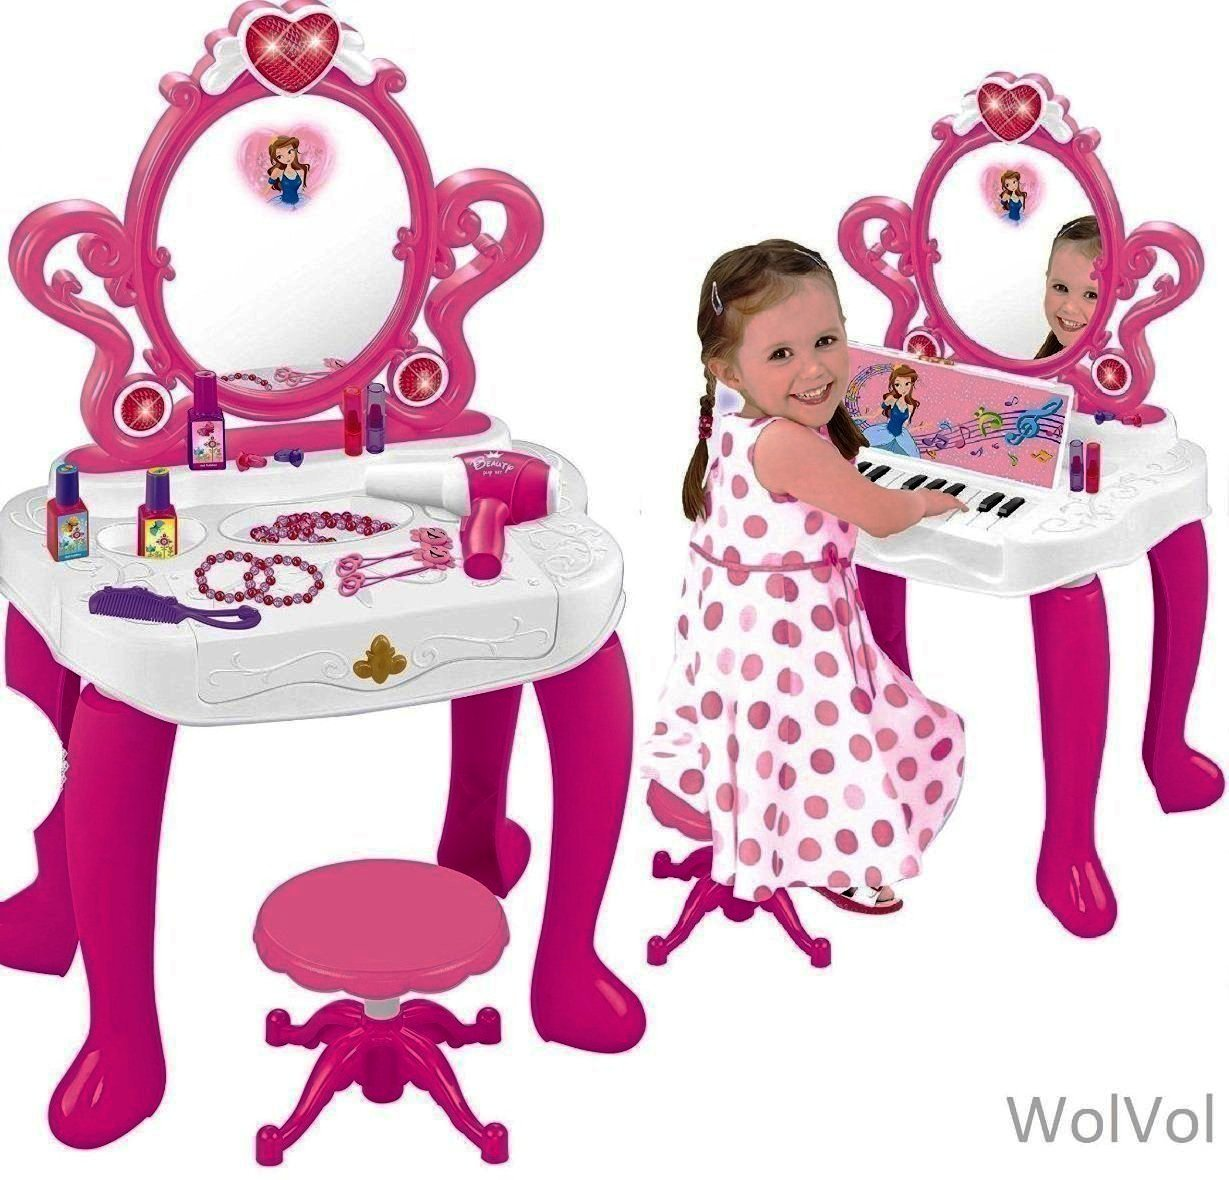 WolVol 2-in-1 Vanity Set Girls Toy Makeup Accessories with Working Piano & Flashing Lights, Big Mirror, Cosmetics, Working Hair Dryer - Glowing Princess Will Appear When Pressing The Mirror-Button by WolVol